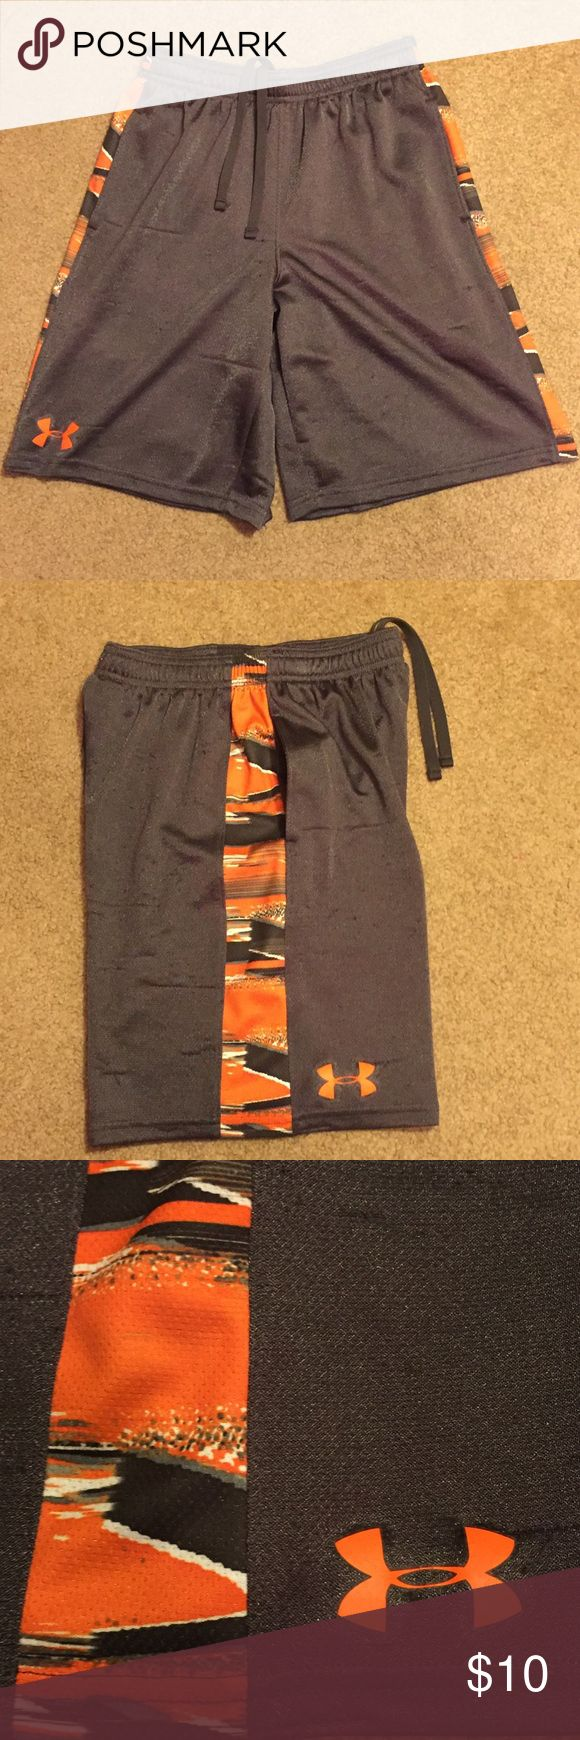 Boys youth medium under armour shorts. Boys youth medium shorts from under armor. Dark gray with orange black and gray pattern trim. Shorts have a lot of picks in the material and I would definitely consider them playclothes. I did my best to show The picks in the close-ups.  Waste of approximately 23 inches unstretched and have a drawstring to make smaller. Inseam measures approximately 9 inches. Under Armour Bottoms Shorts